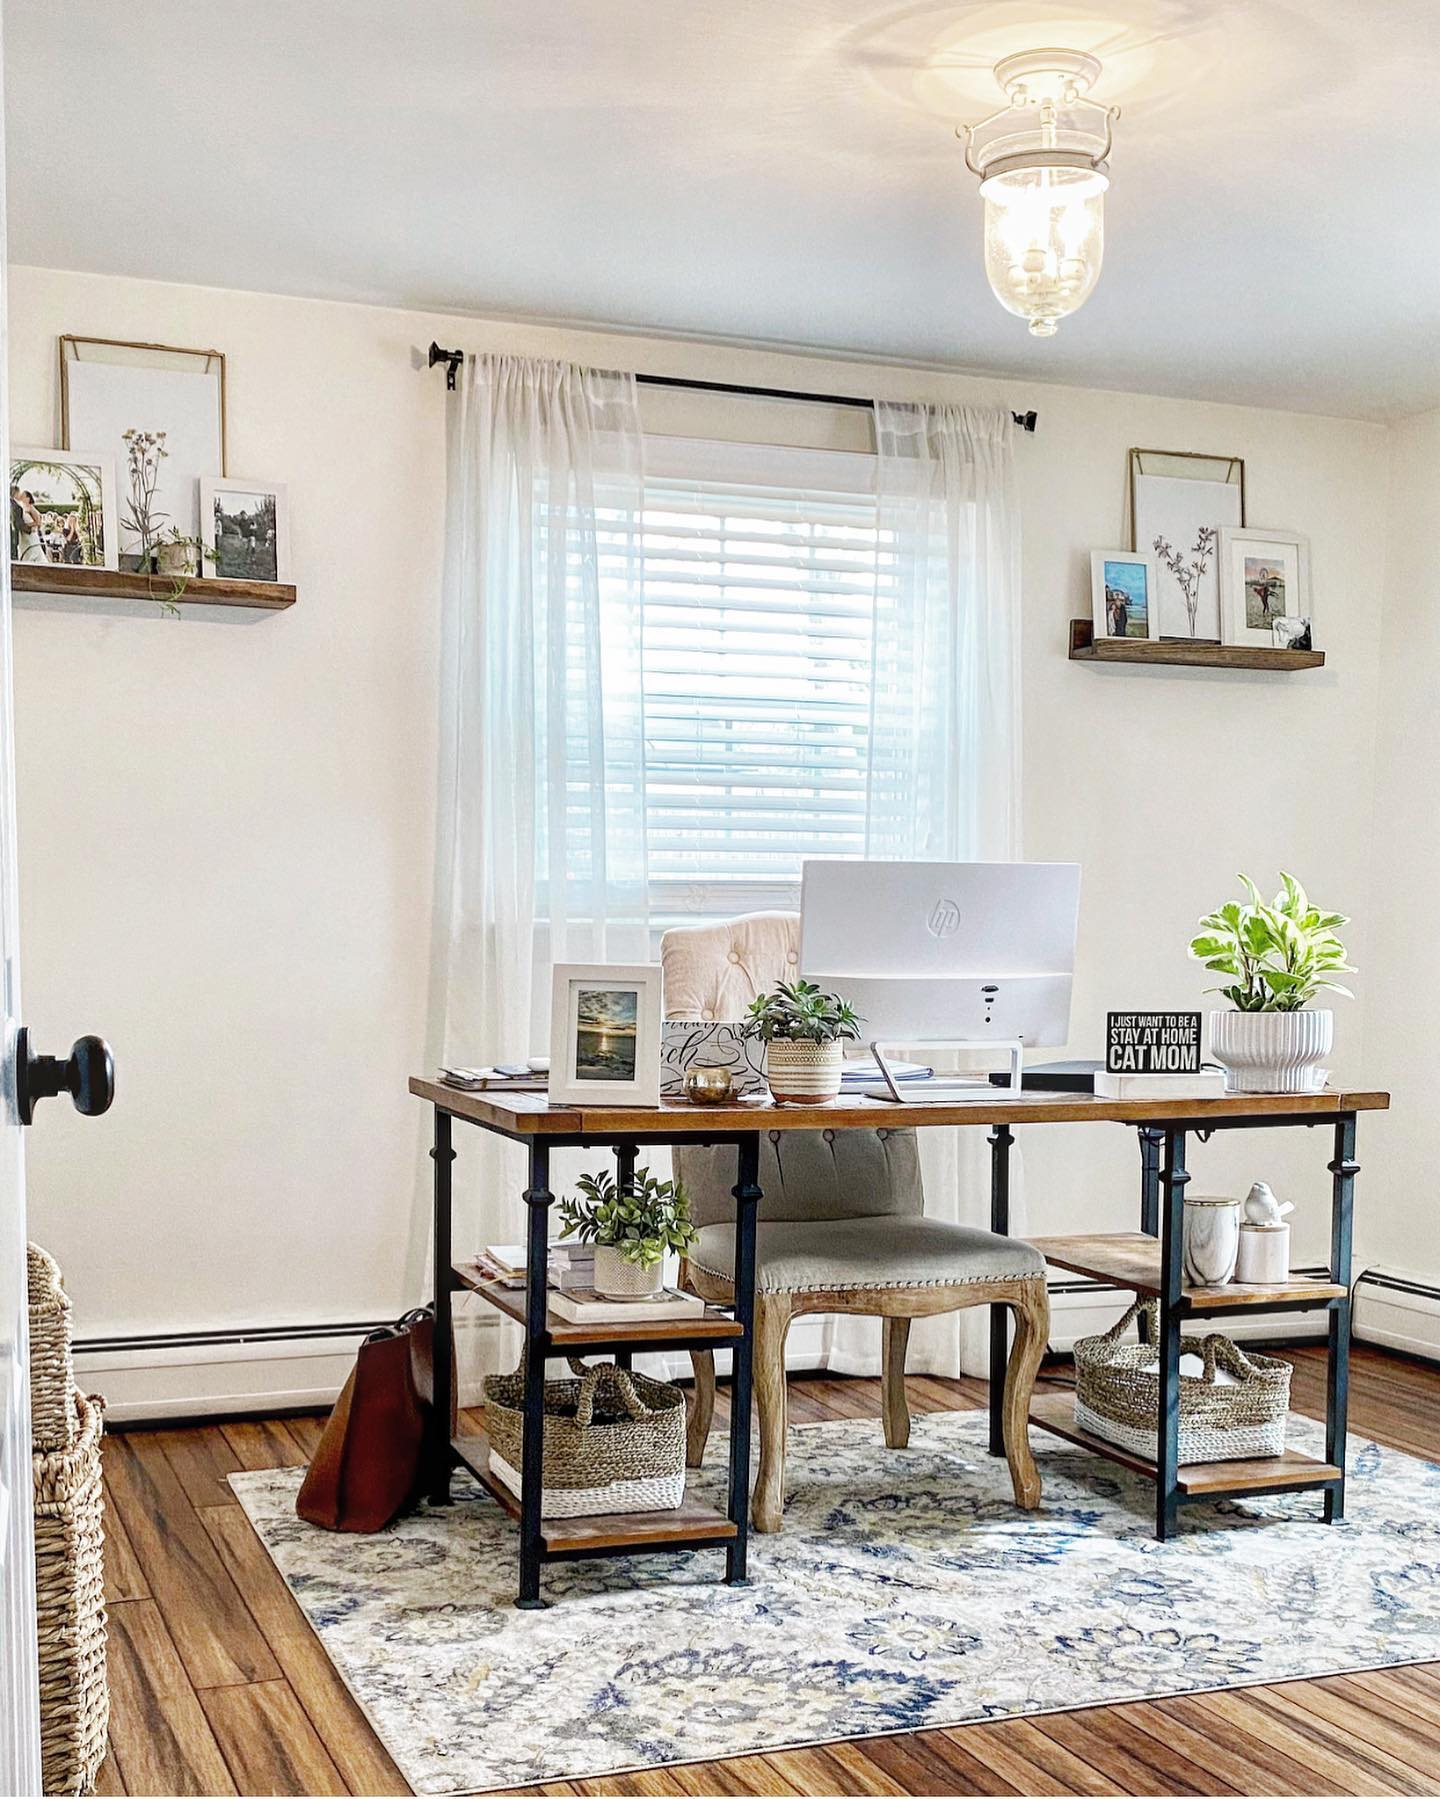 Rustic home office Instagram Post